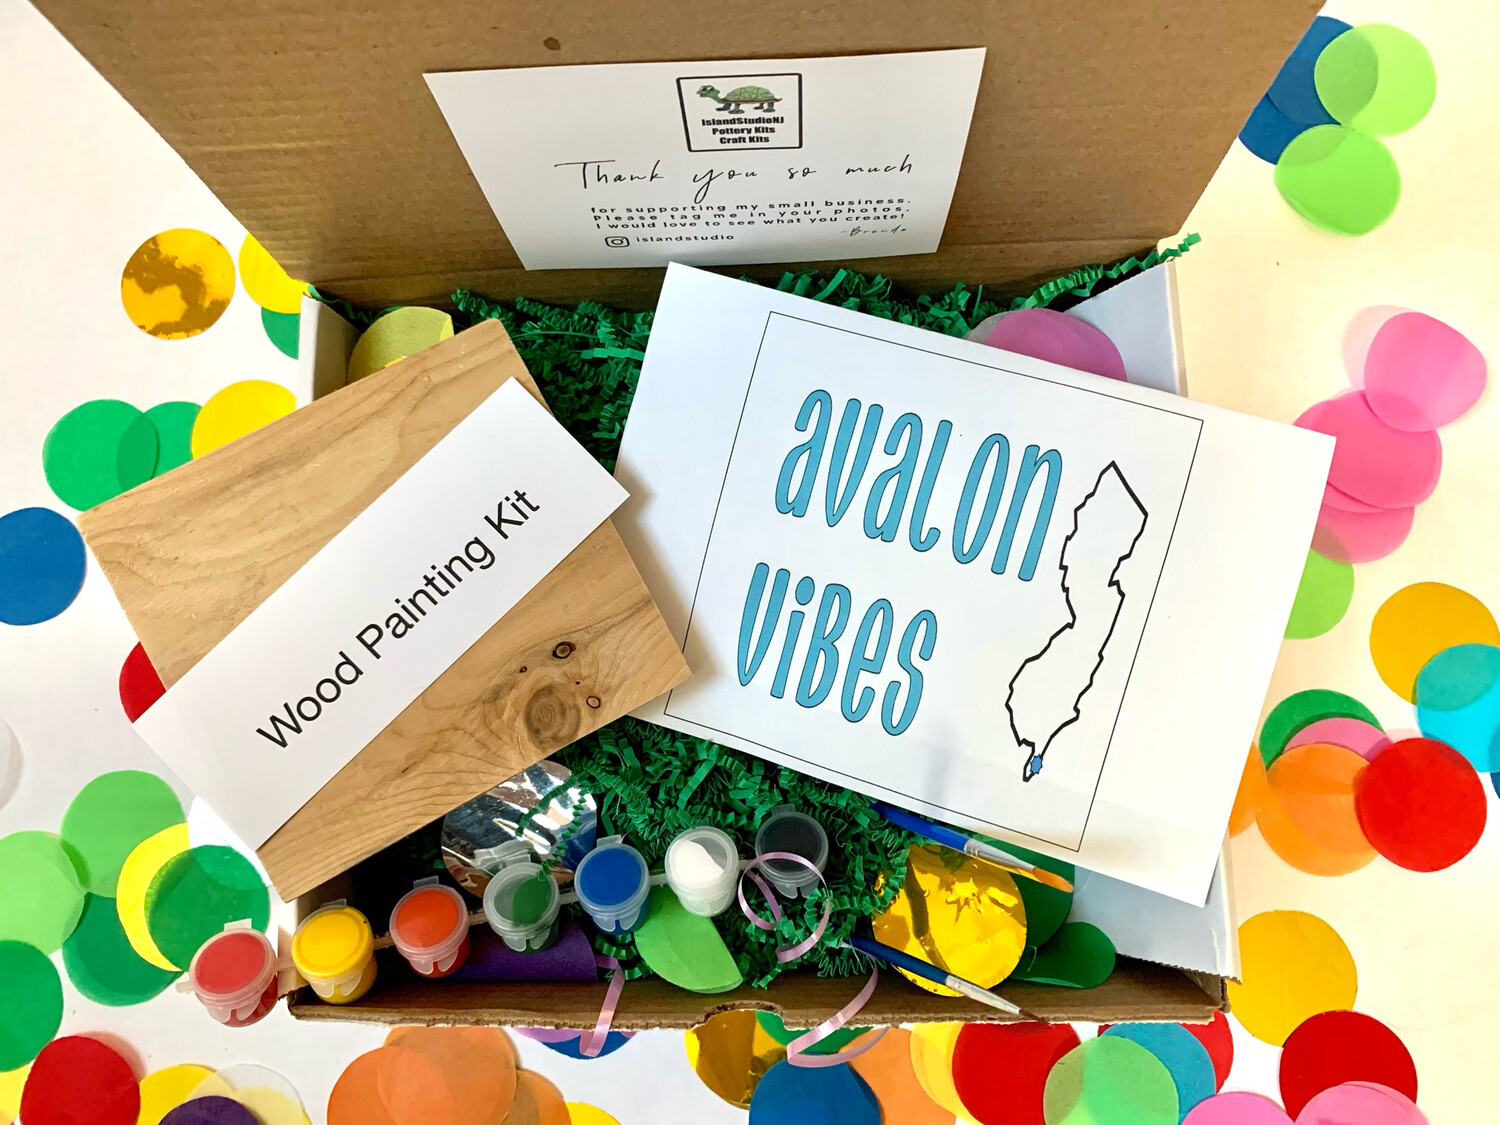 AVALON VIBES Paint Your Own Wood Sign Kit